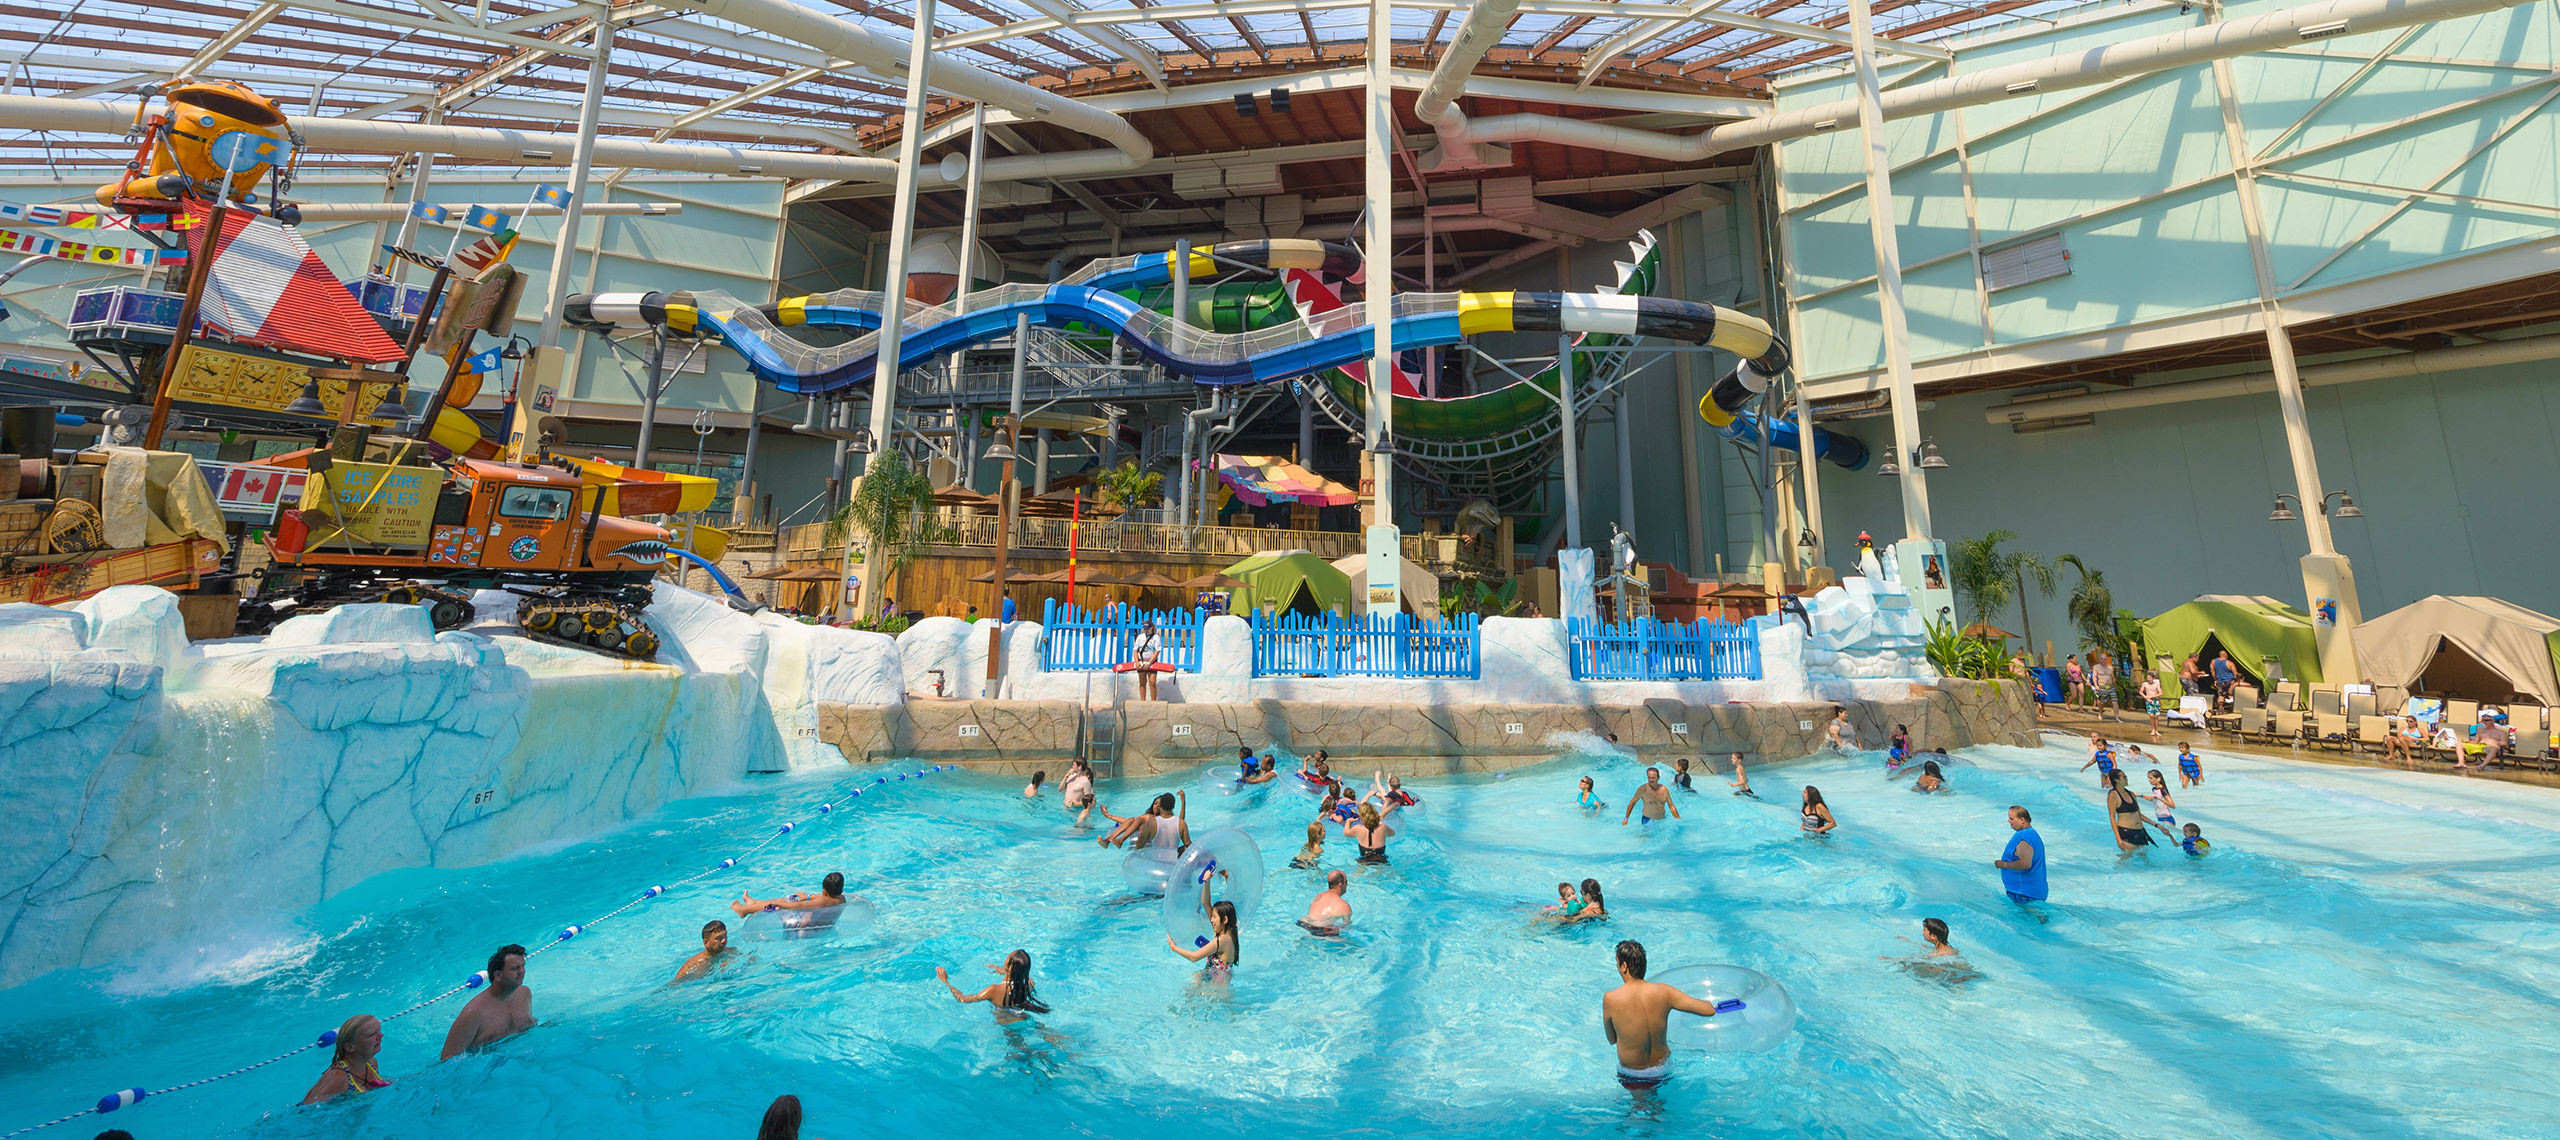 Attractions – Camelback Mountain Resort / Aquatopia